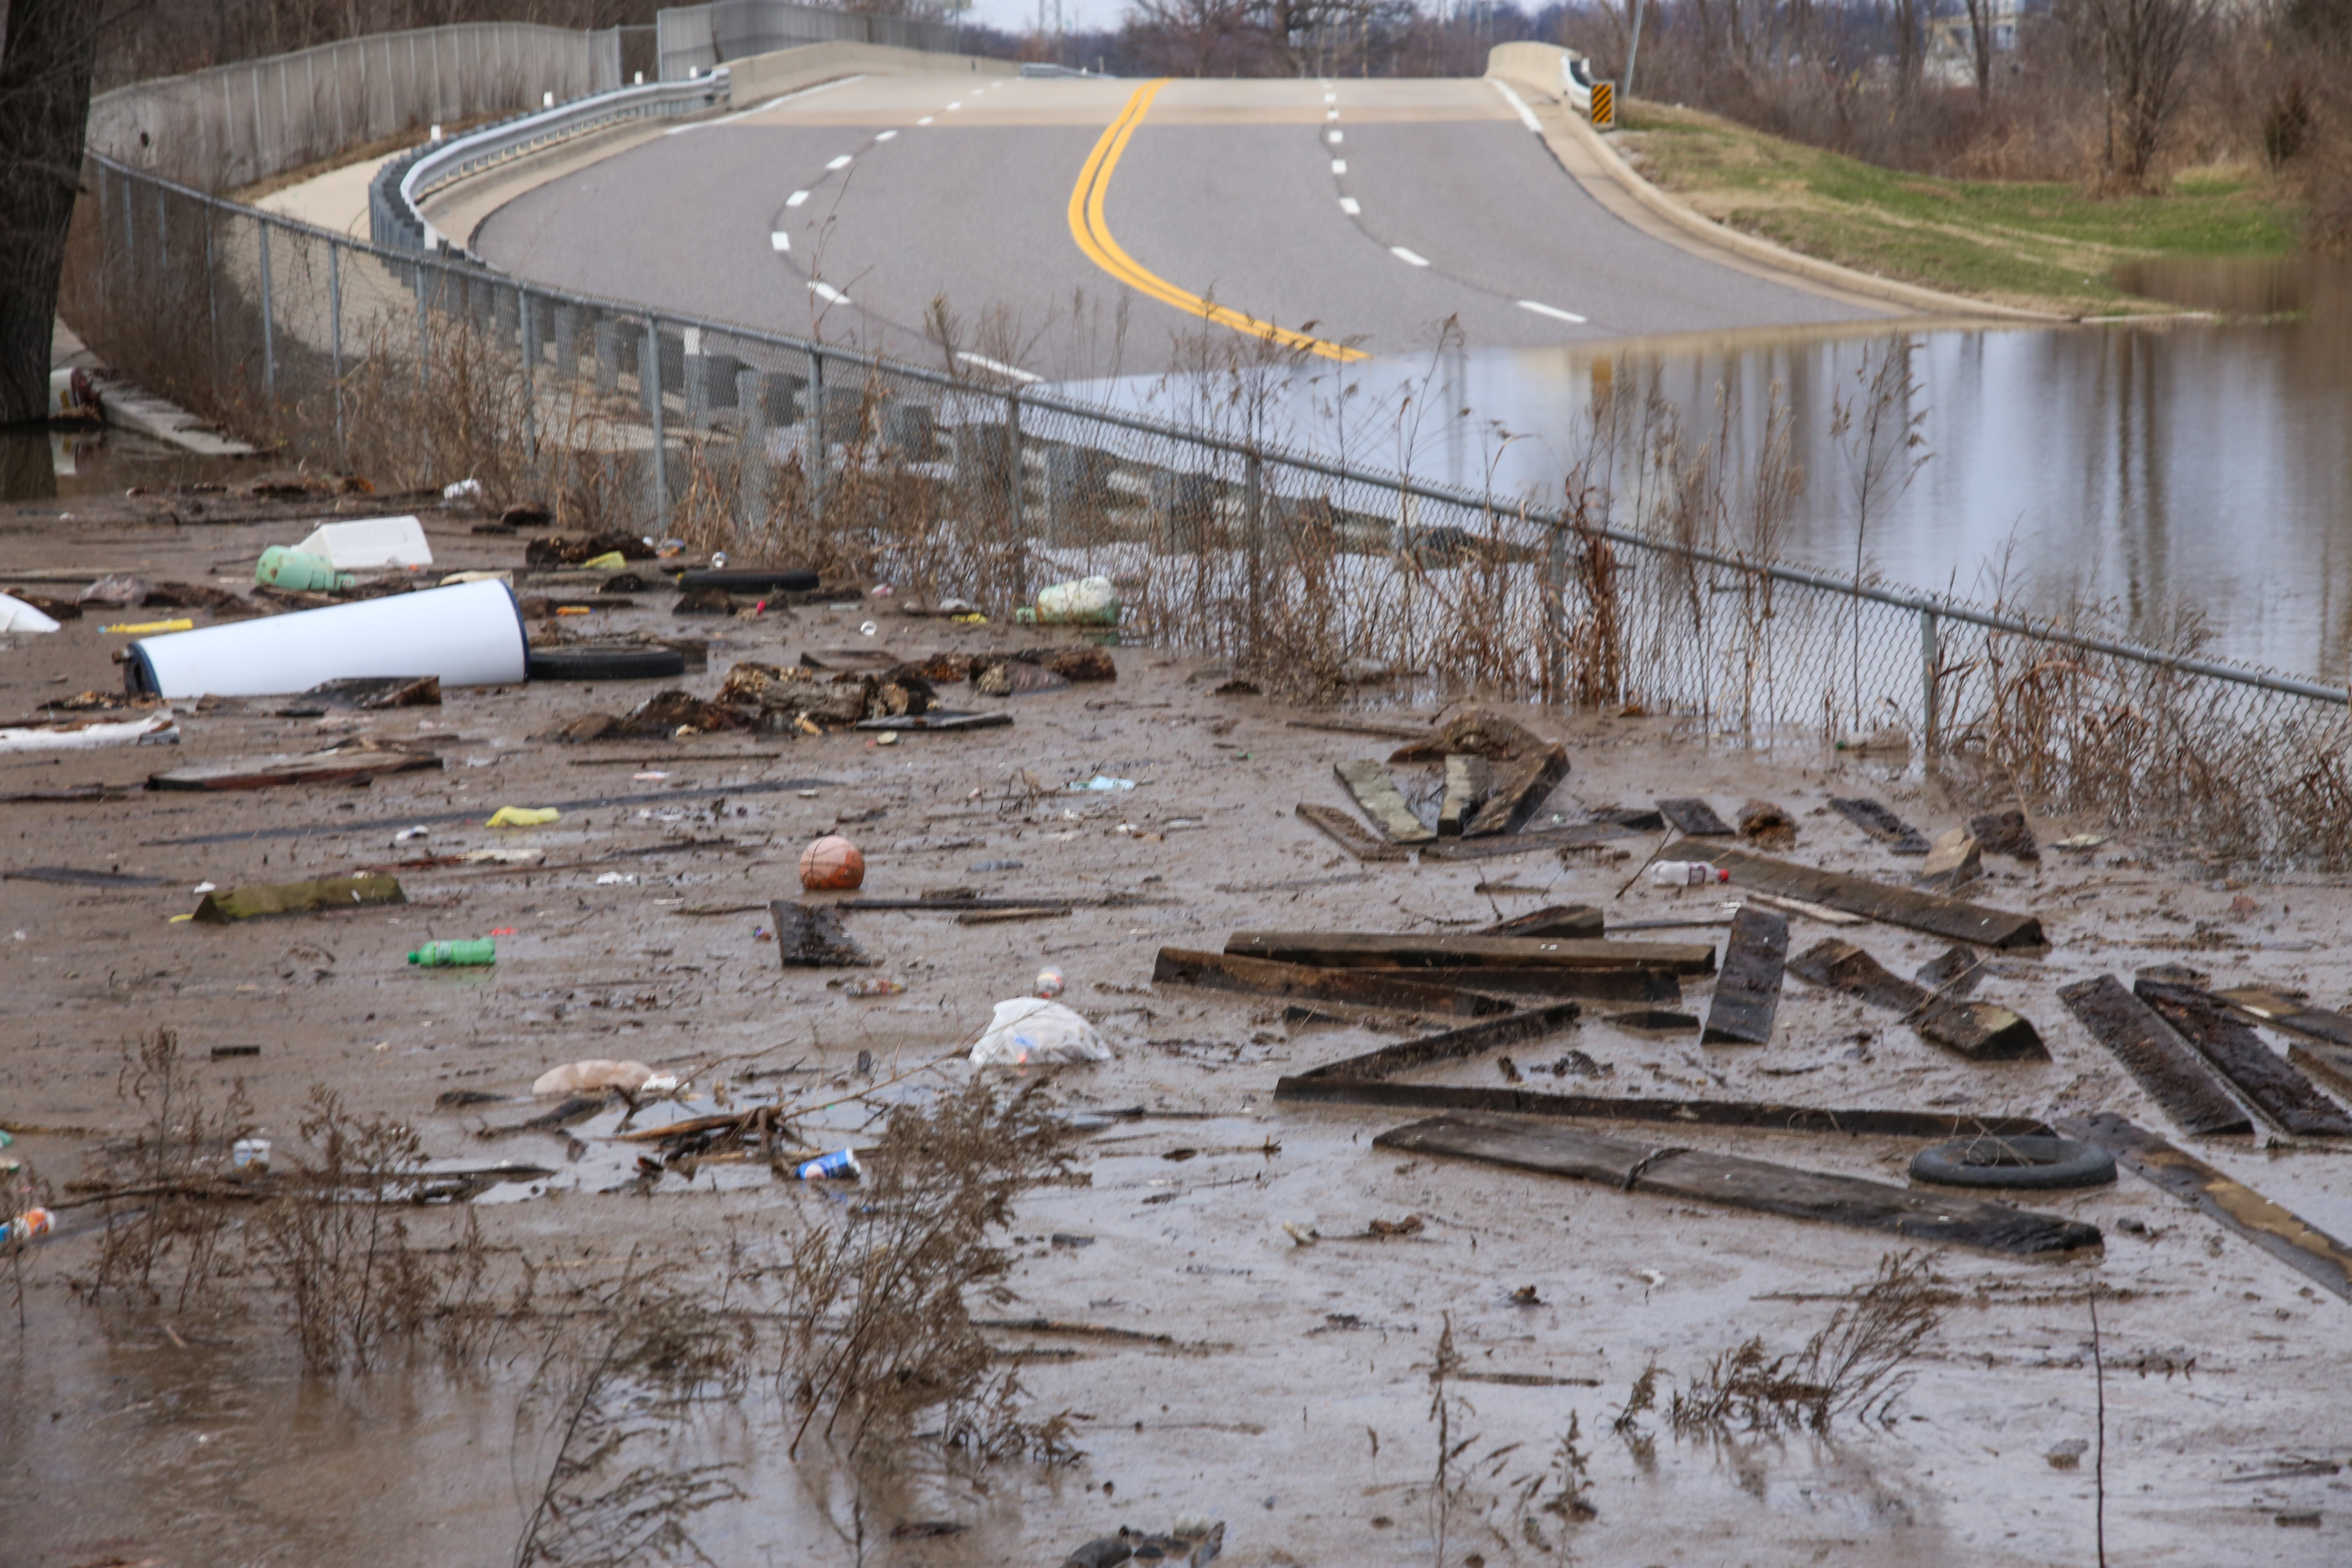 INUNDATED: Rising water levels encroached on a stretch of road near River Des Peres. Last month's floods halted highways and damaged numerous homes in the area.